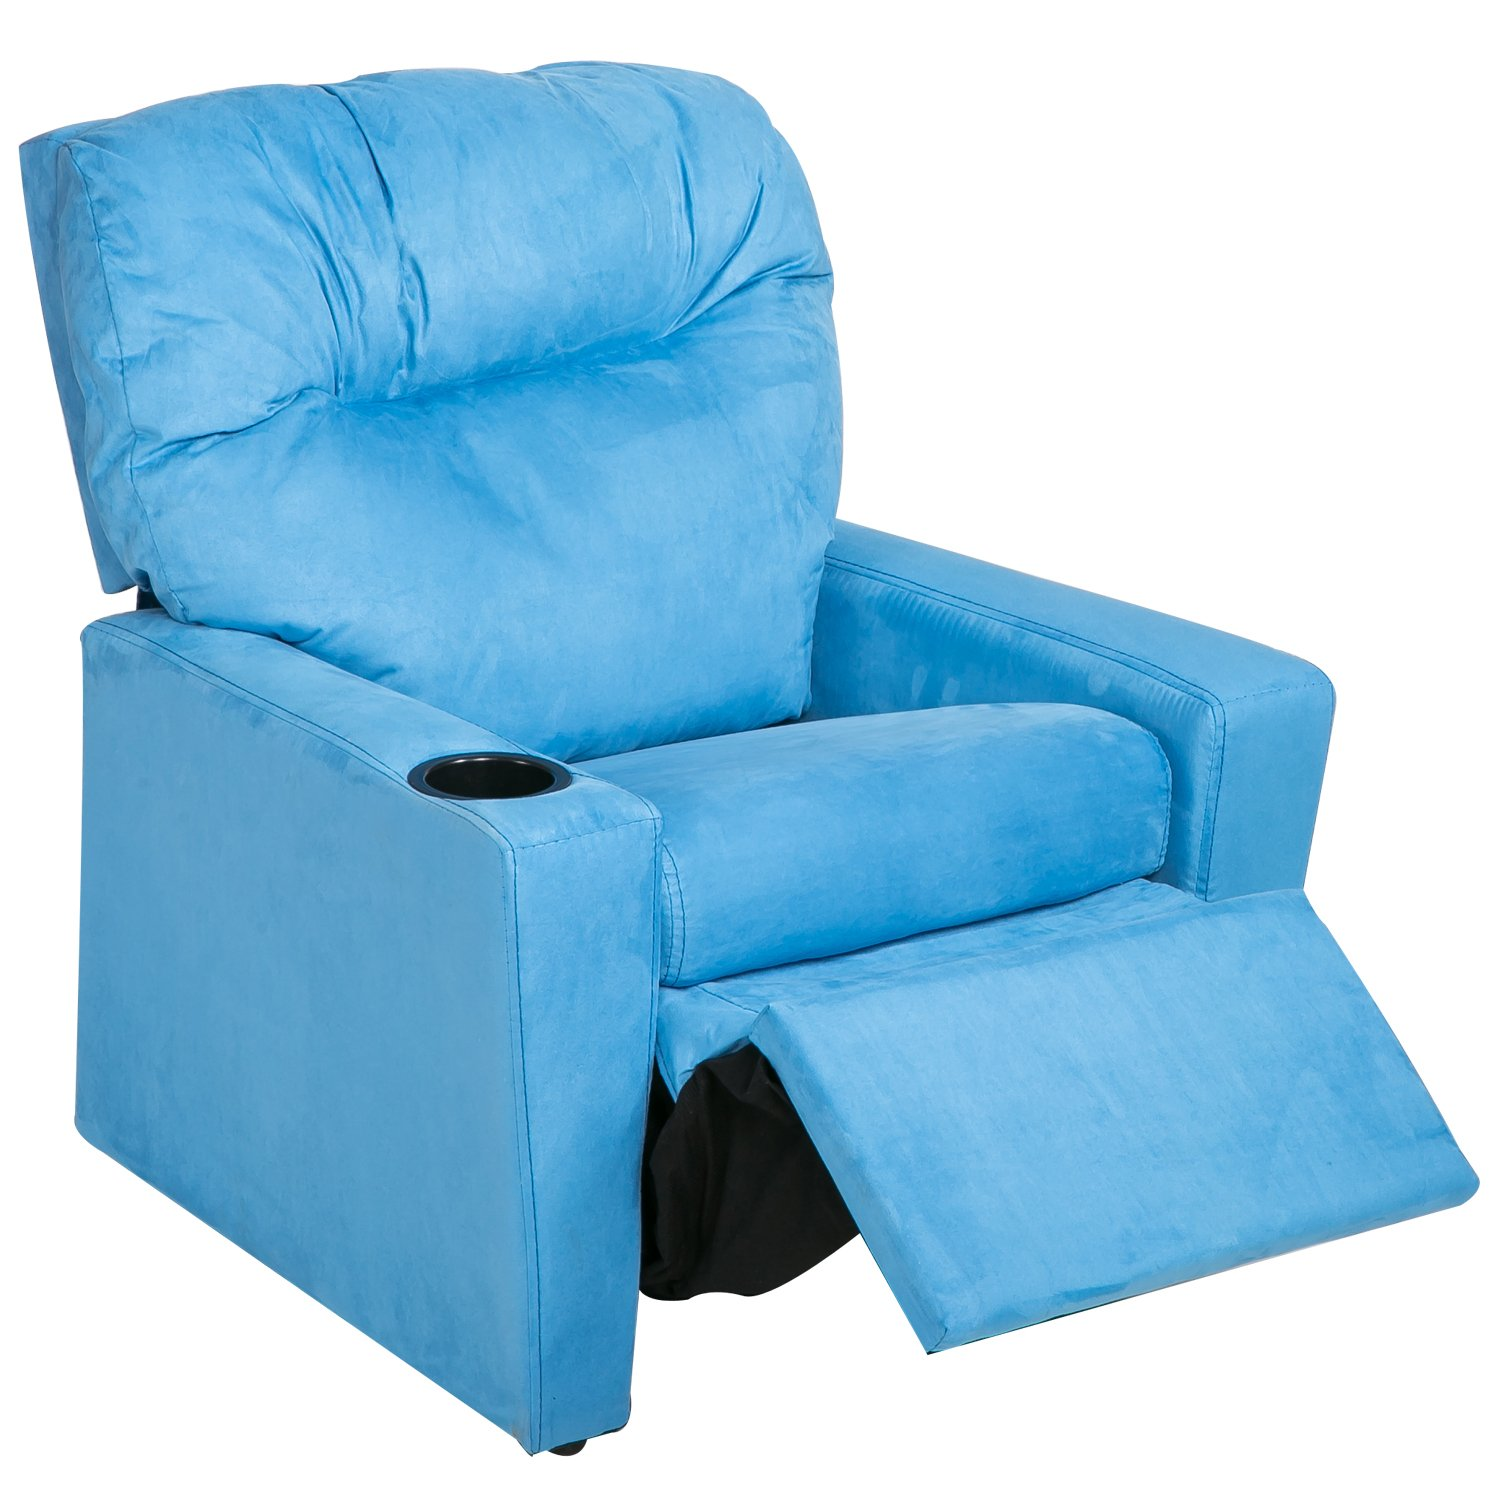 Harper&Bright Designs Kids Recliner with Cup Holder Fabric Sofa Chair for Child (Blue Fabric)